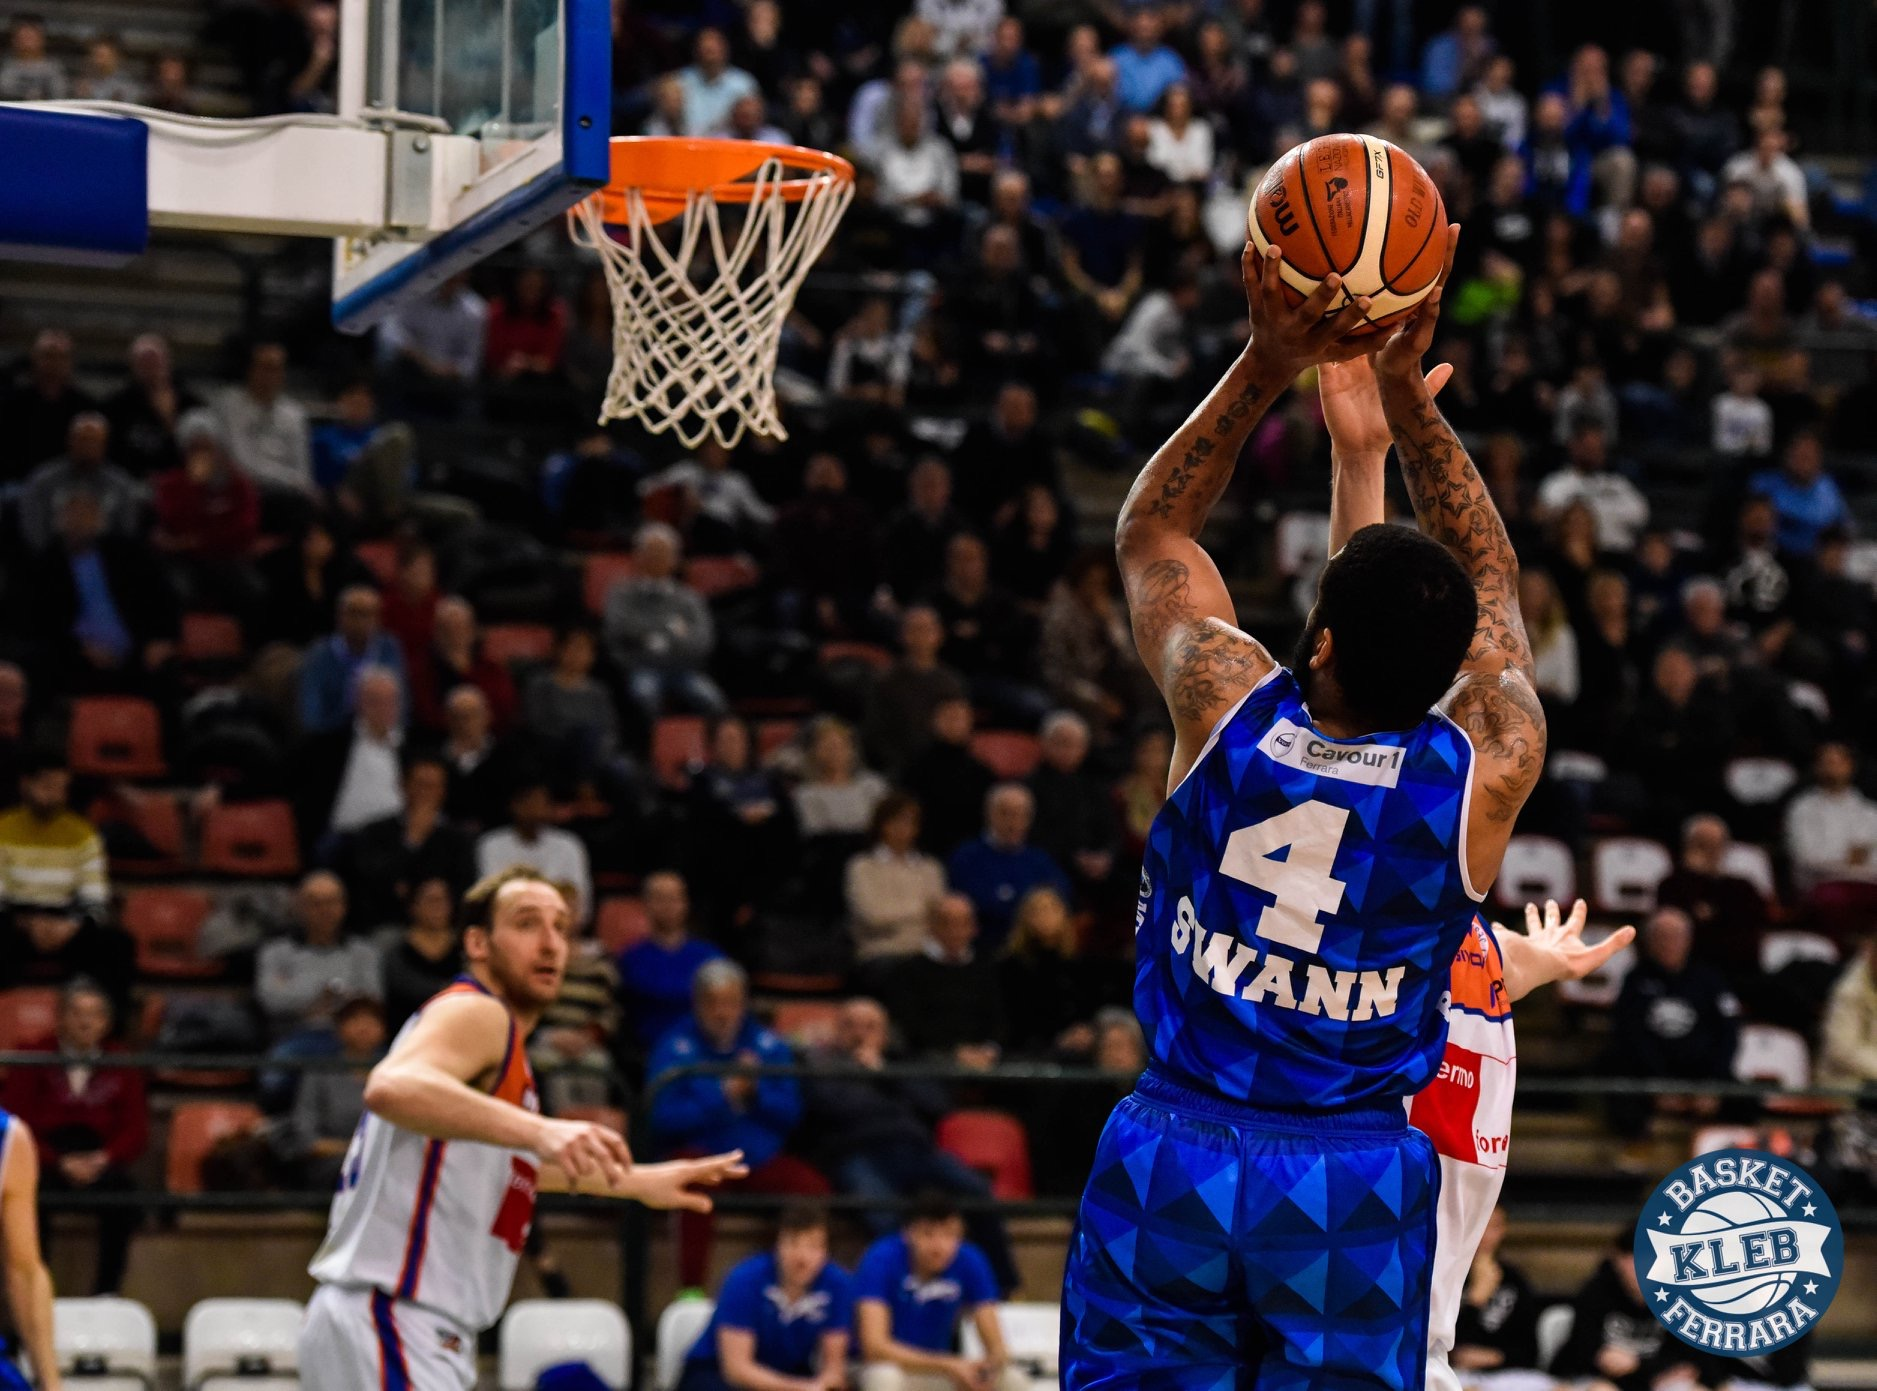 Isaiah Swann - Israeli League Champion3x Israeli League All-Star2x Germany All-StarBBL All-Star MVPIsrael Cup FinalsBBL League Finals